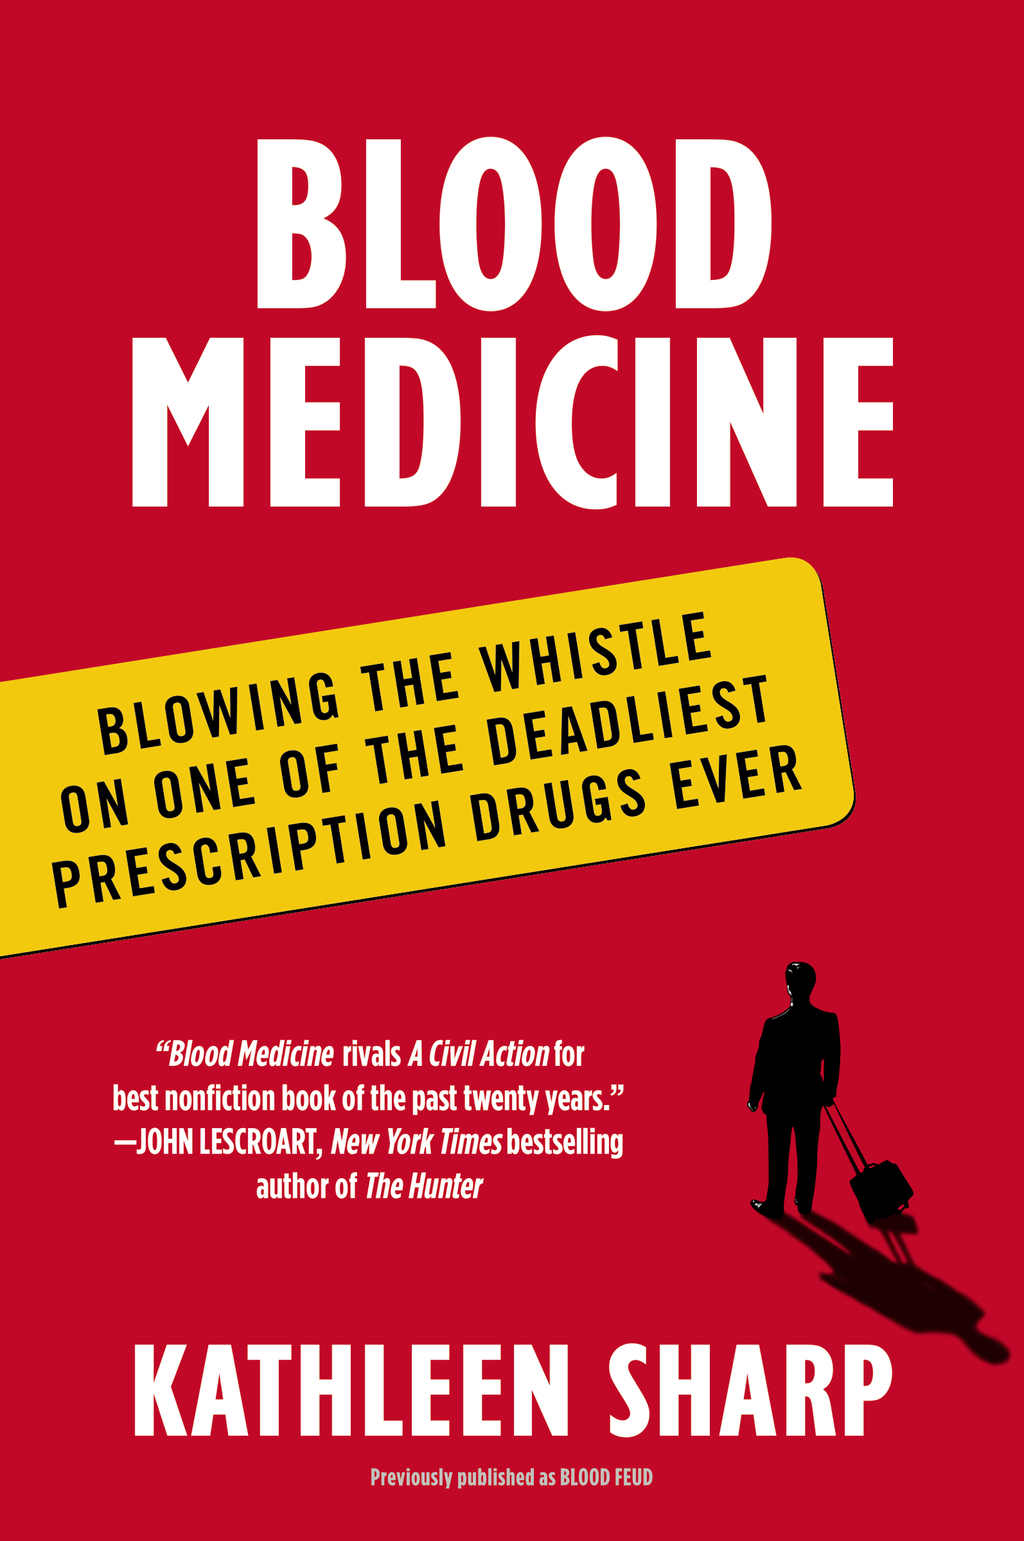 Blood Medicine Blowing the Whistle on One of the Deadliest Prescription Drugs Ever